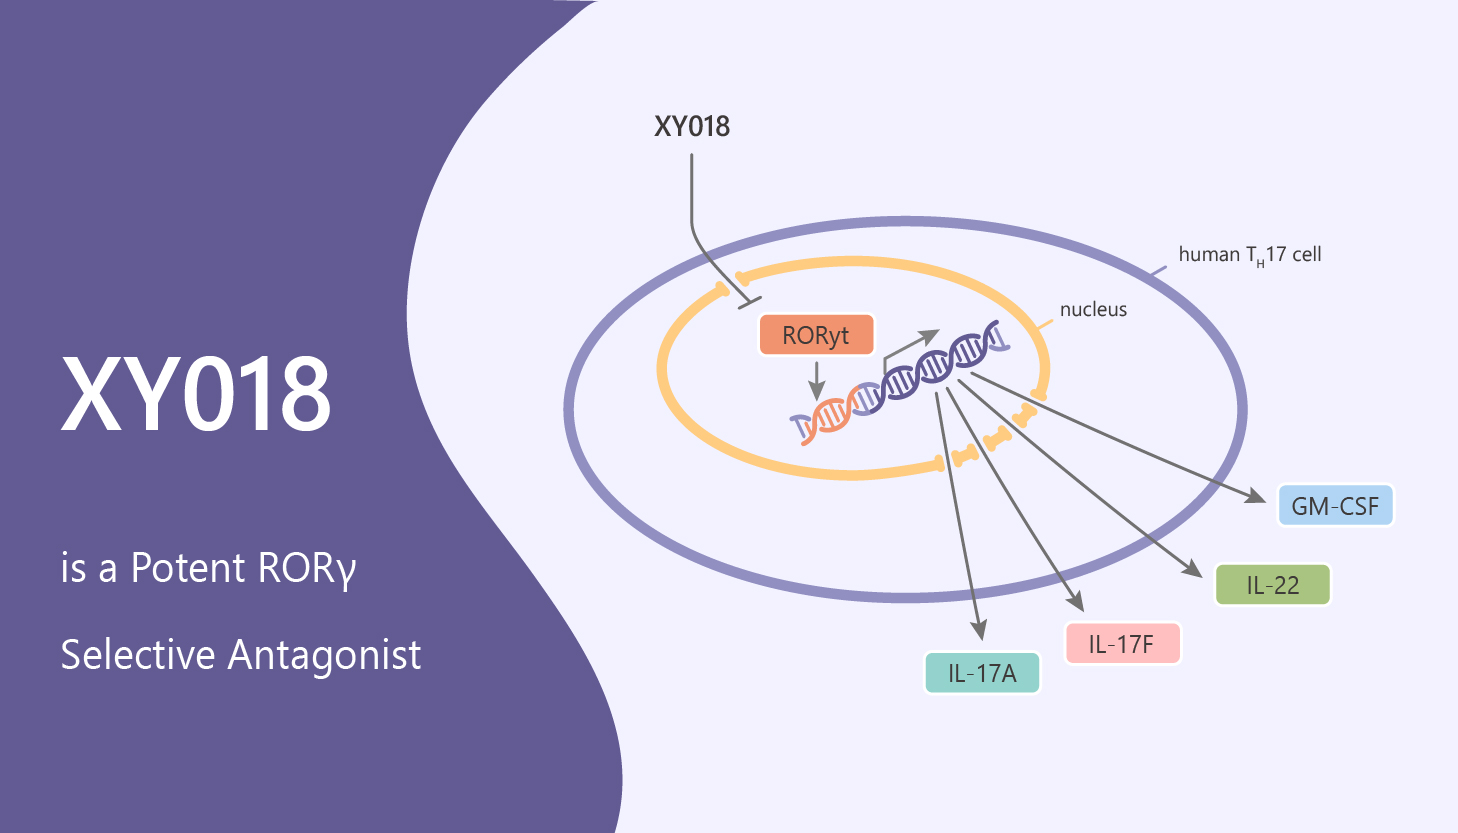 XY018 is a Potent RORγ Selective Antagonist 2020 05 30 - XY018 is a Potent RORγ Selective Antagonist